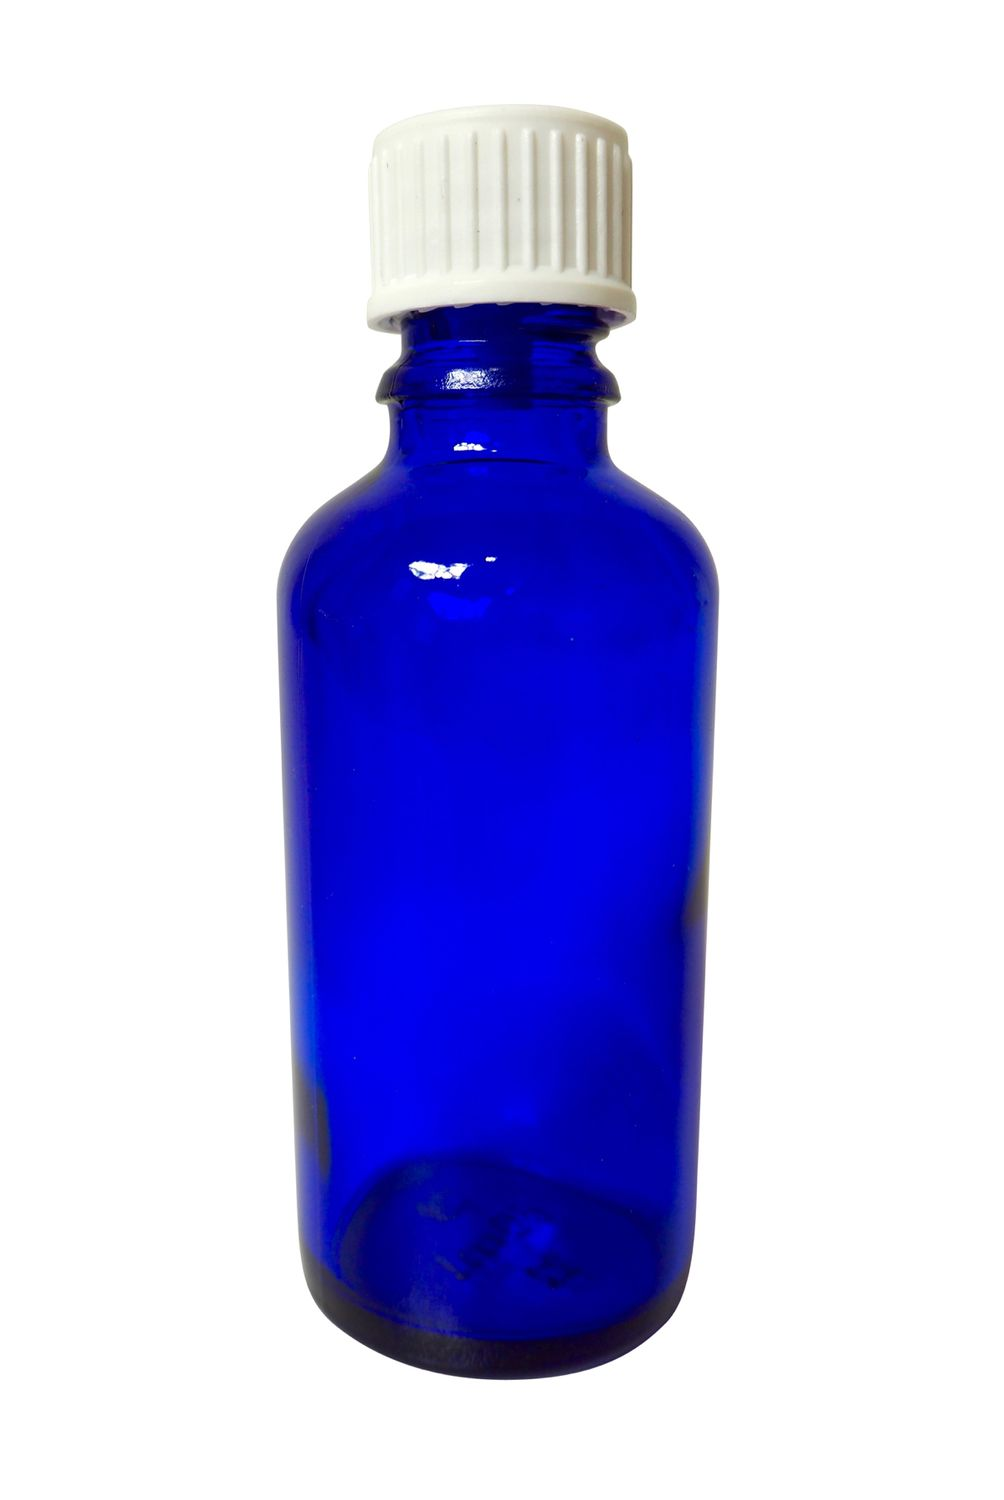 Cobalt Blue Bottle 100 ml DIN 18 Thread & Lid